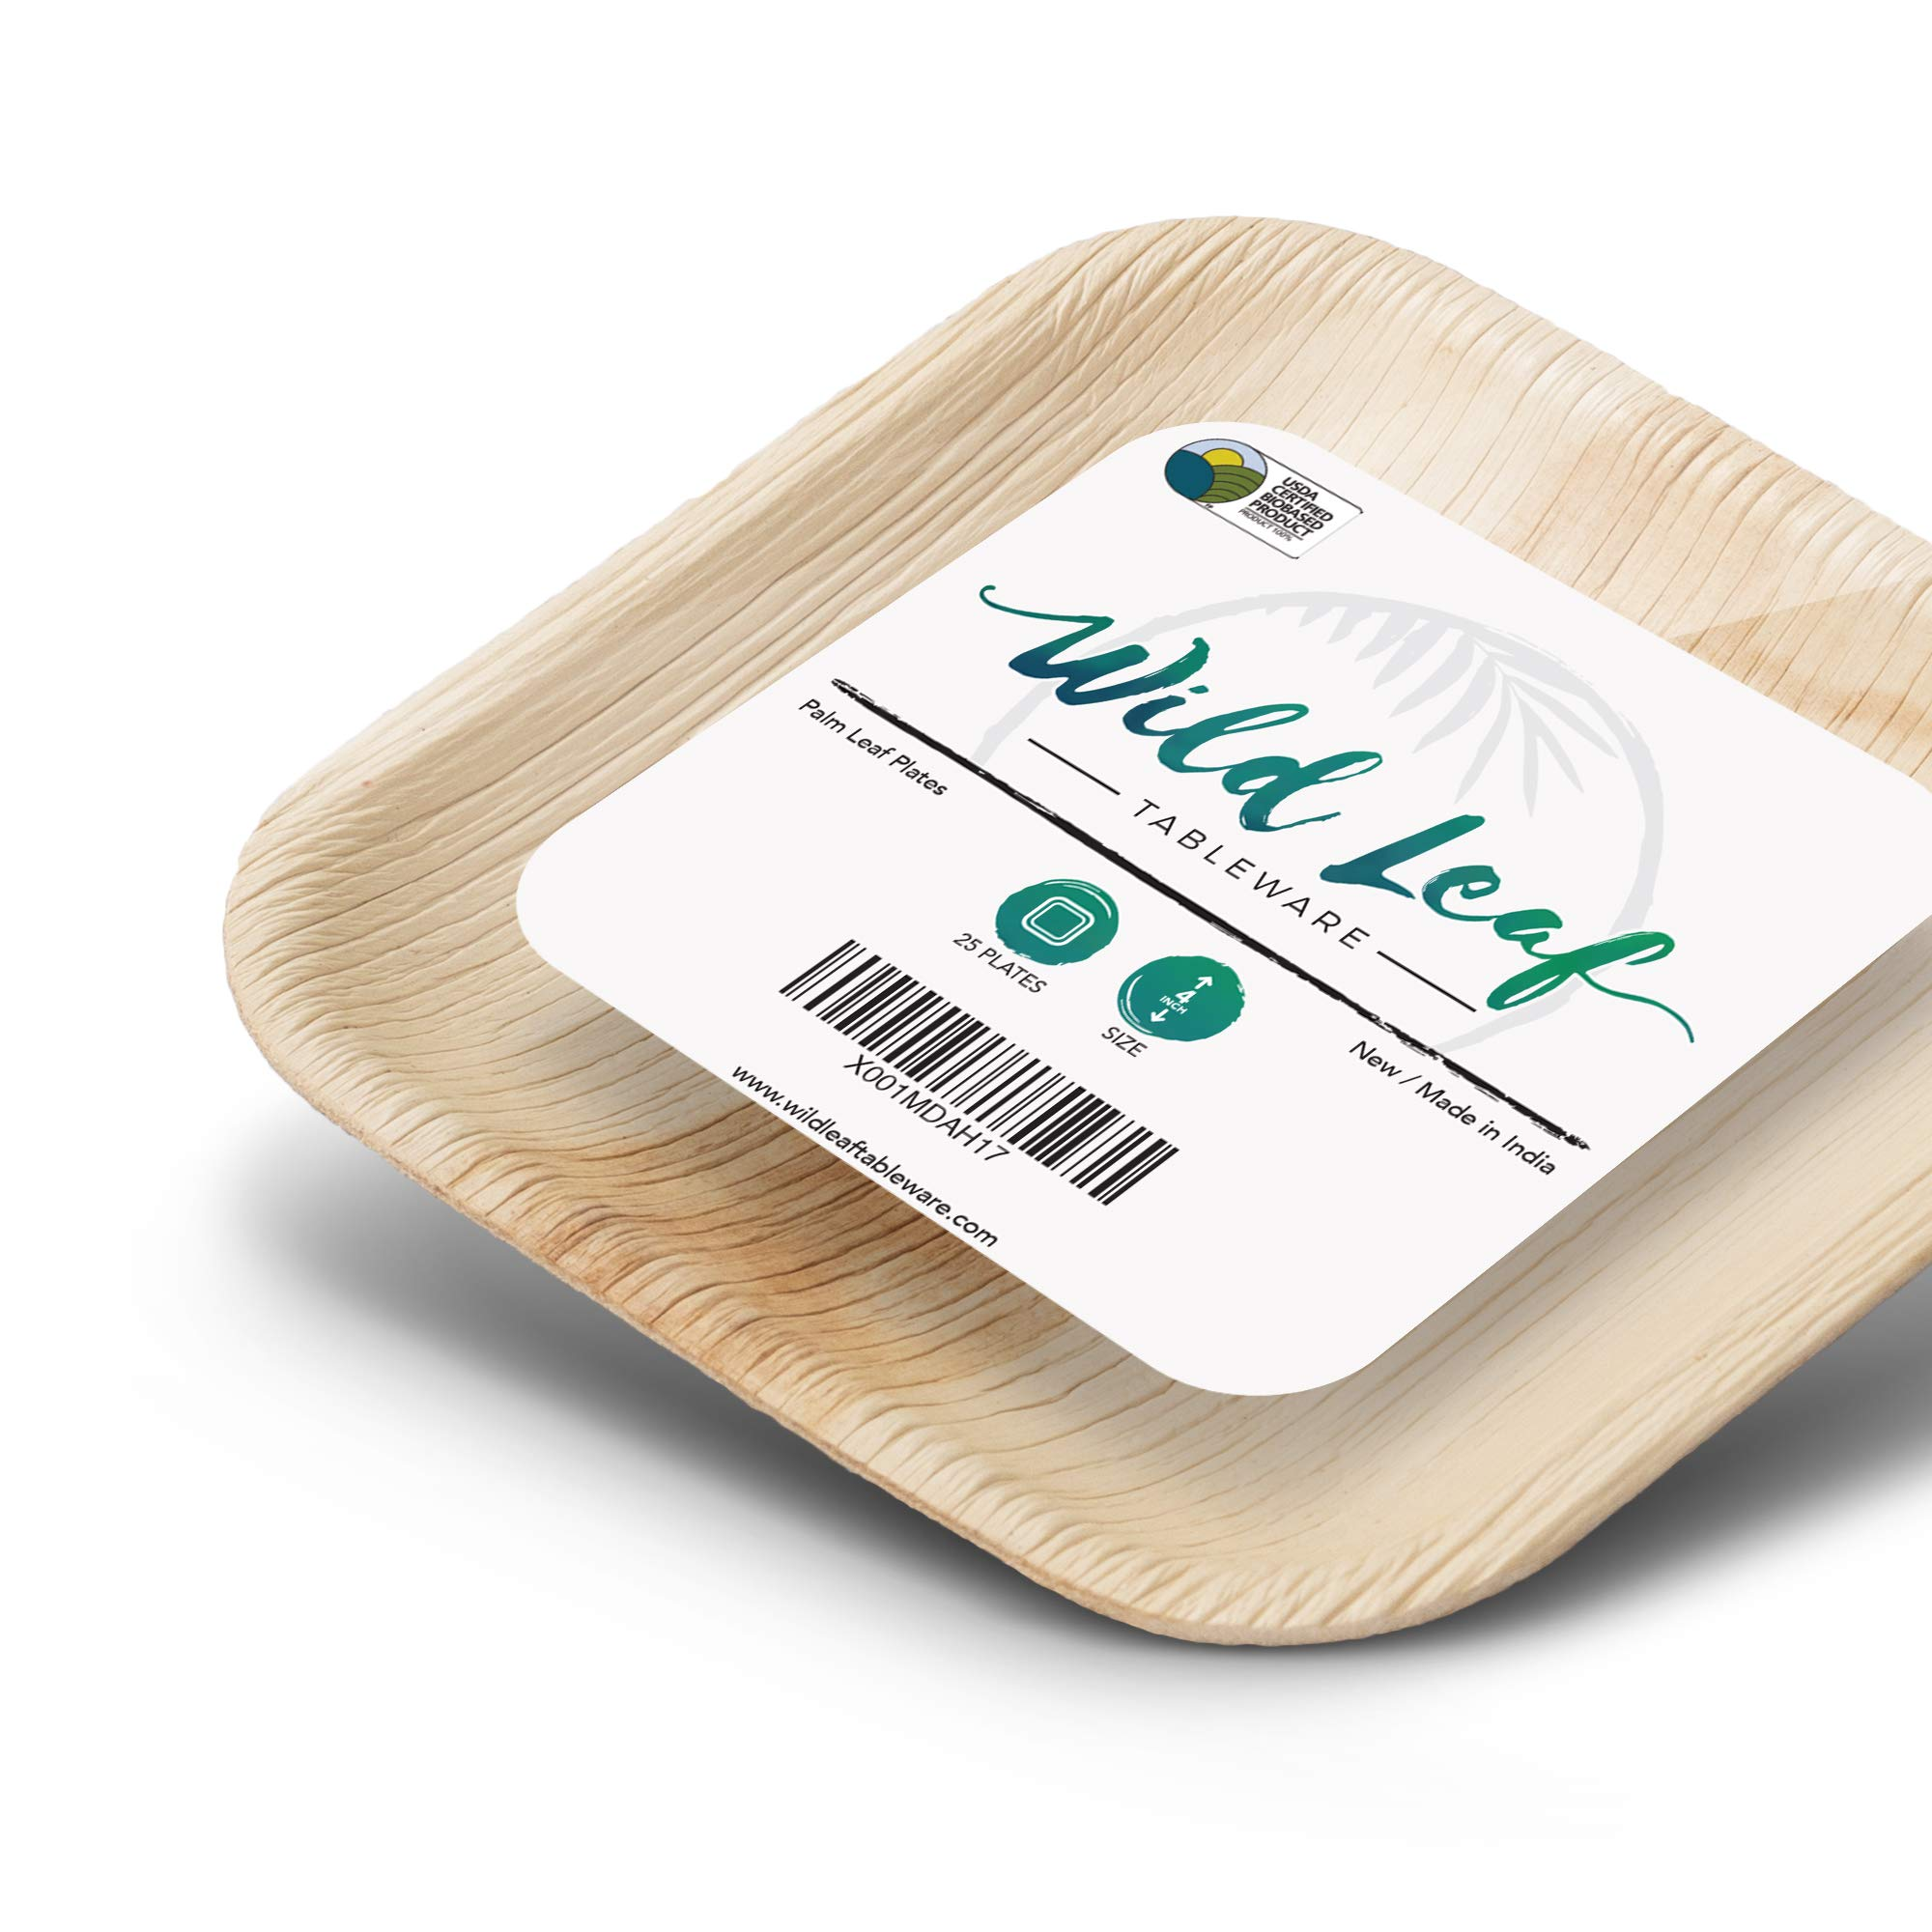 Disposable MINI Canape Plates, 4 Inch, 25 Pack. Tiny, Bite-Size Tasting Plates, Perfect for Cocktail Parties and Catering Events. Eco Friendly Palm Leaf Plates by Wild Leaf Tableware